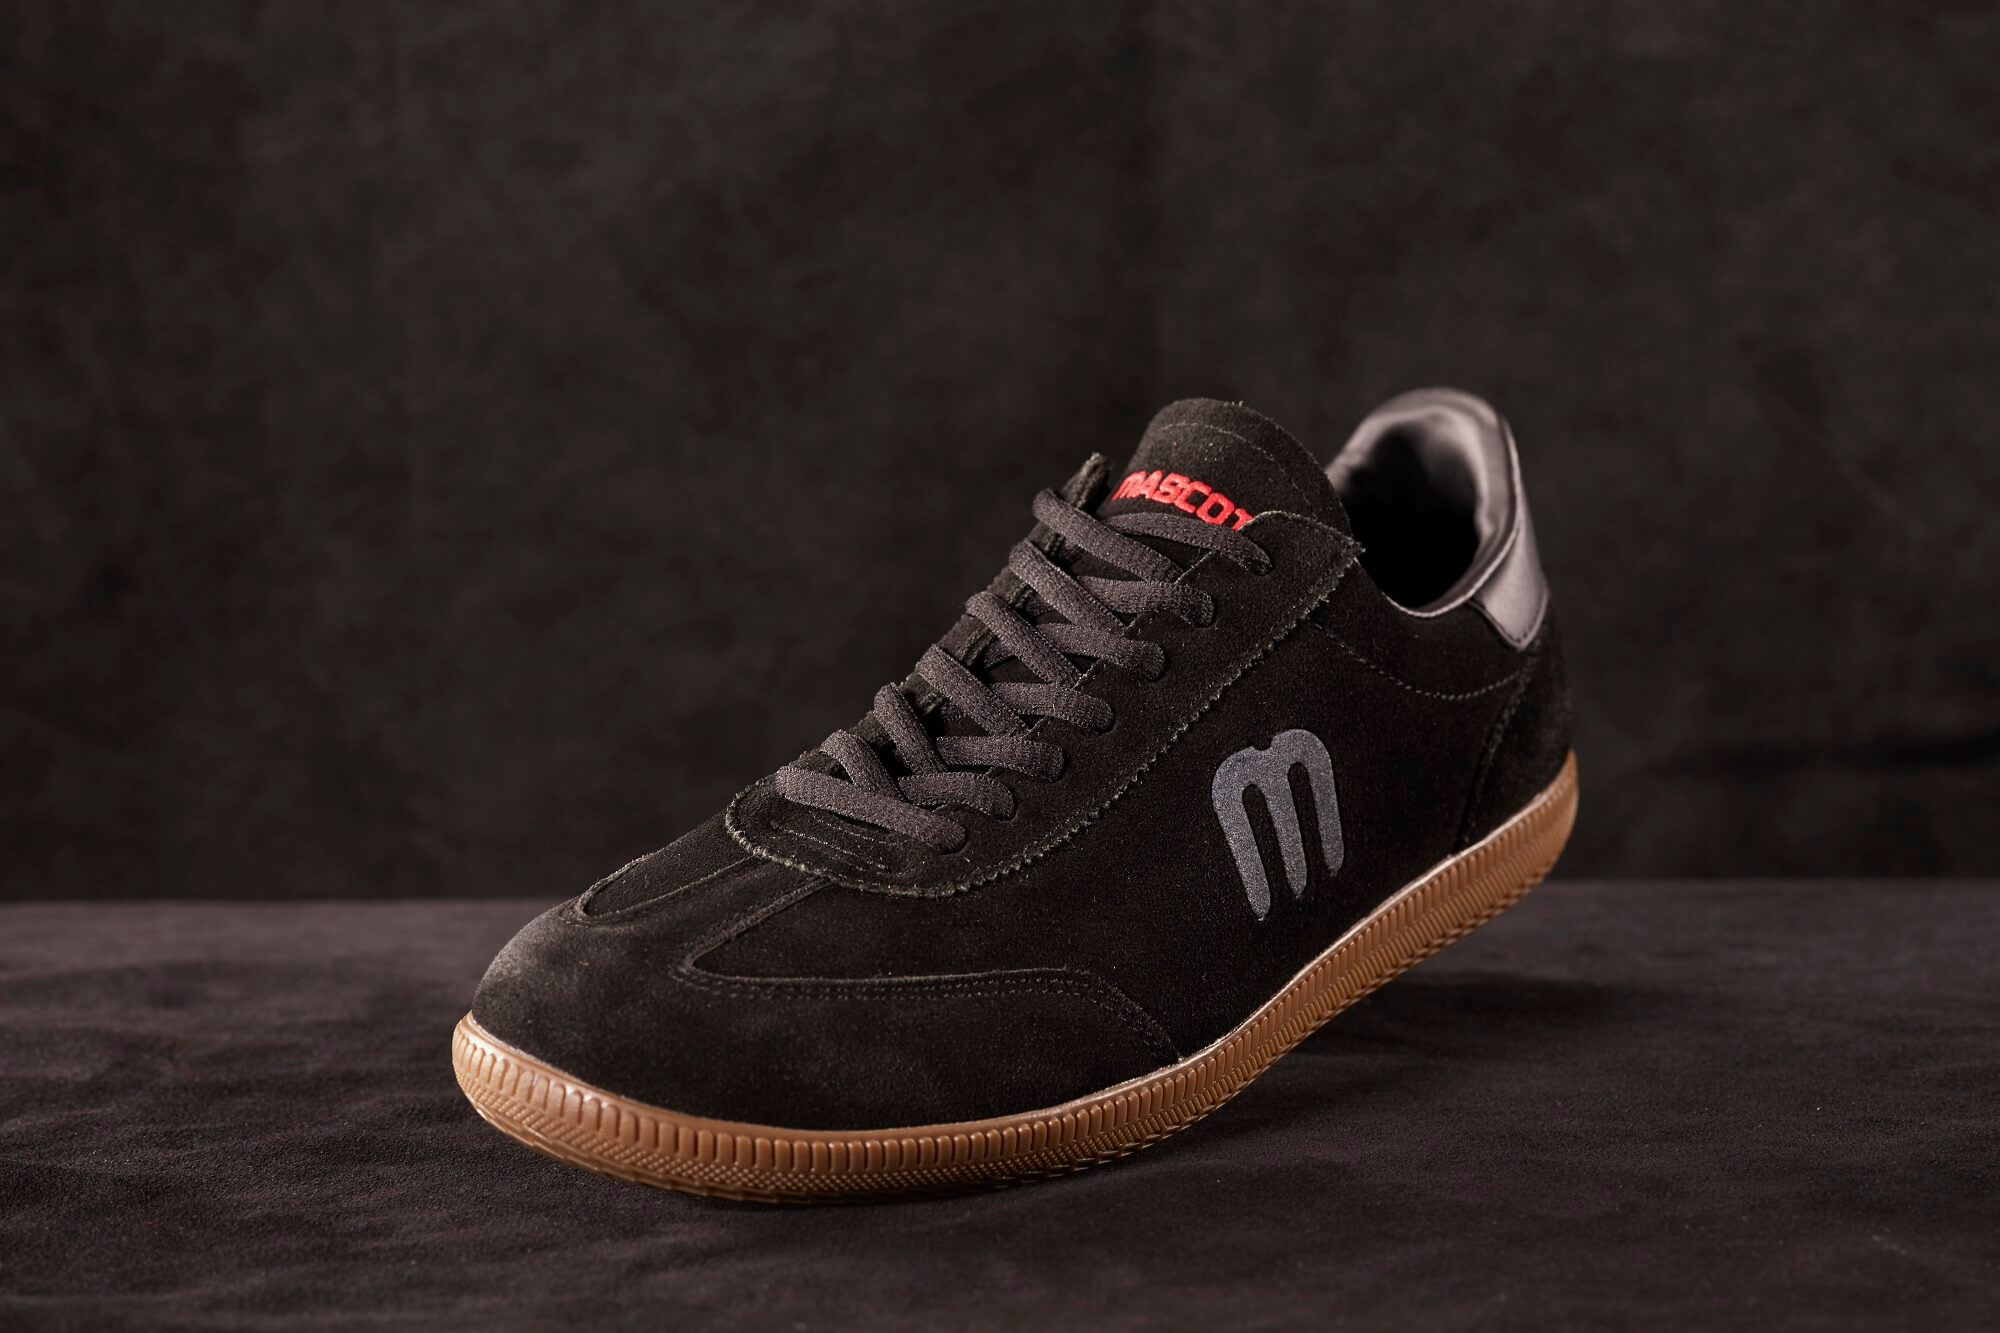 Baskets de travail Noir - MASCOT® FOOTWEAR CASUAL